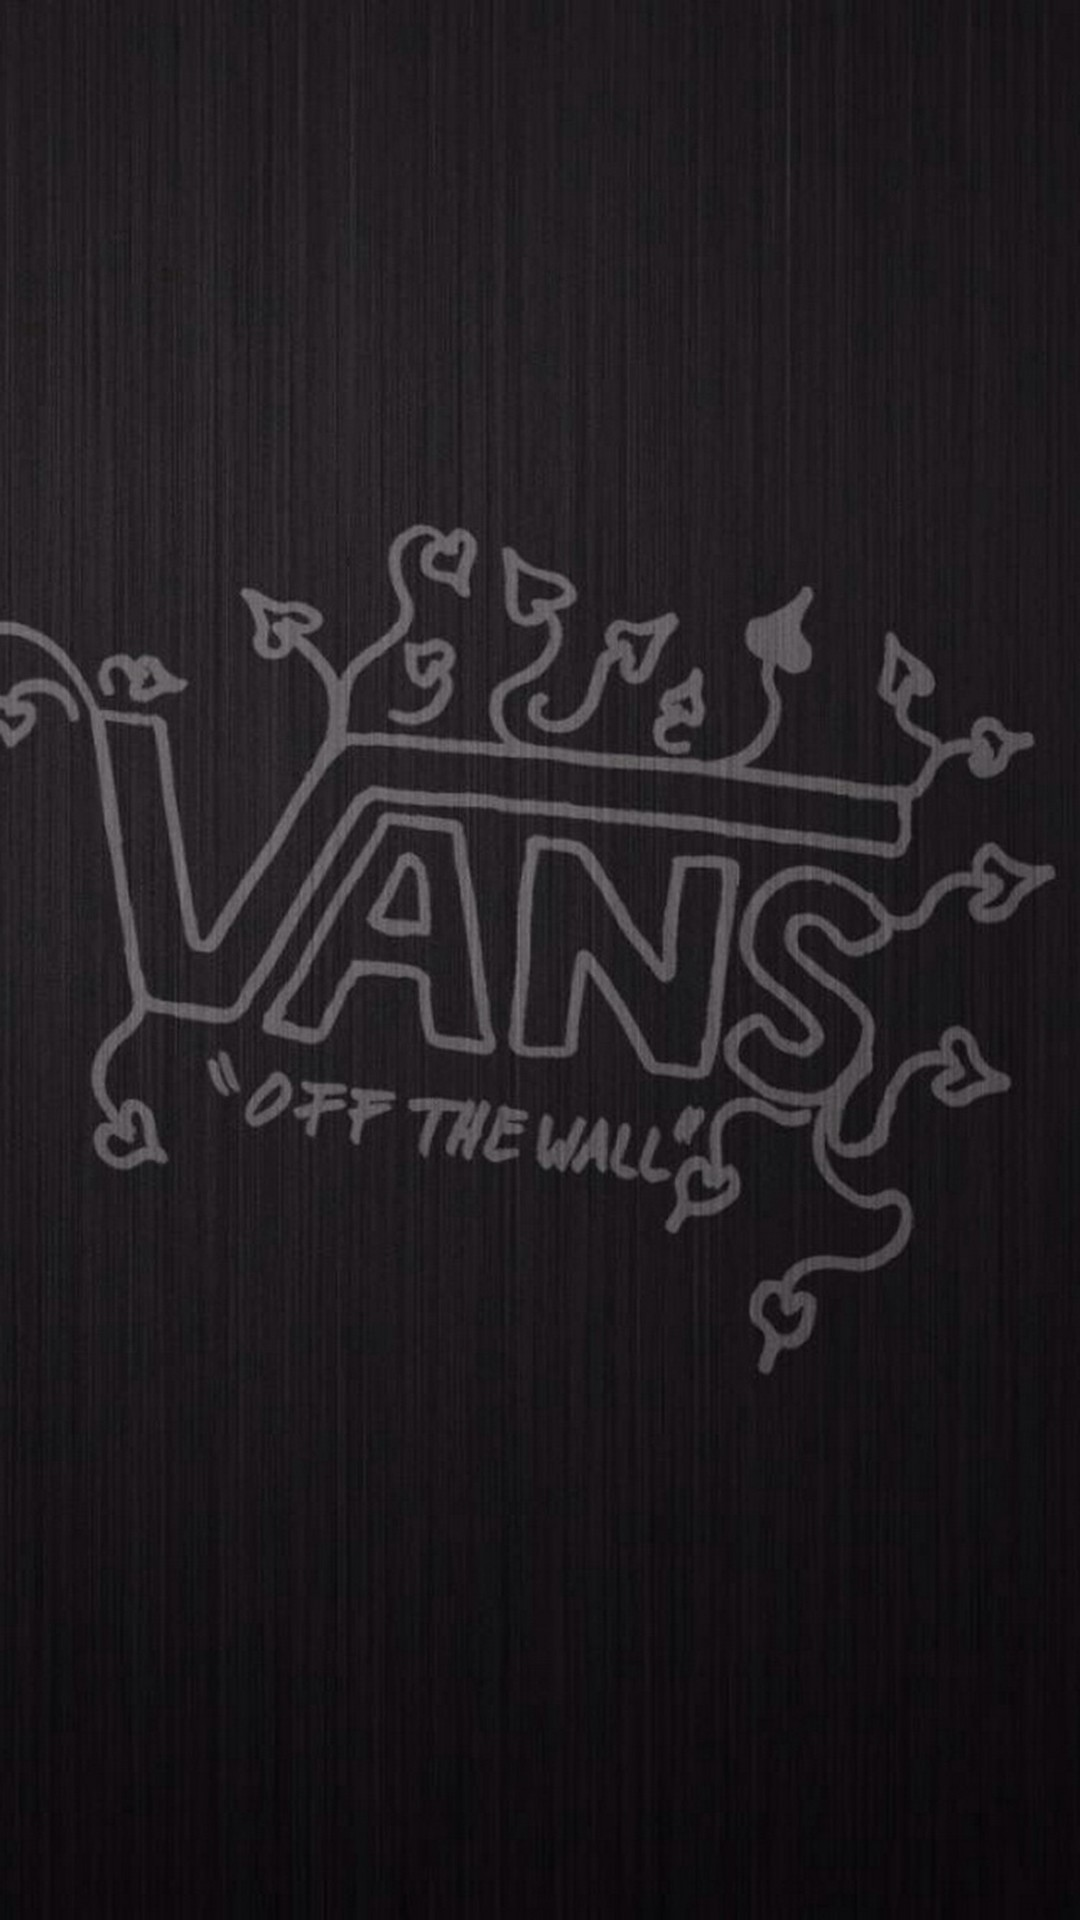 Sick Wallpapers For Iphone 5 Vans Off The Wall Wallpaper 183 ①